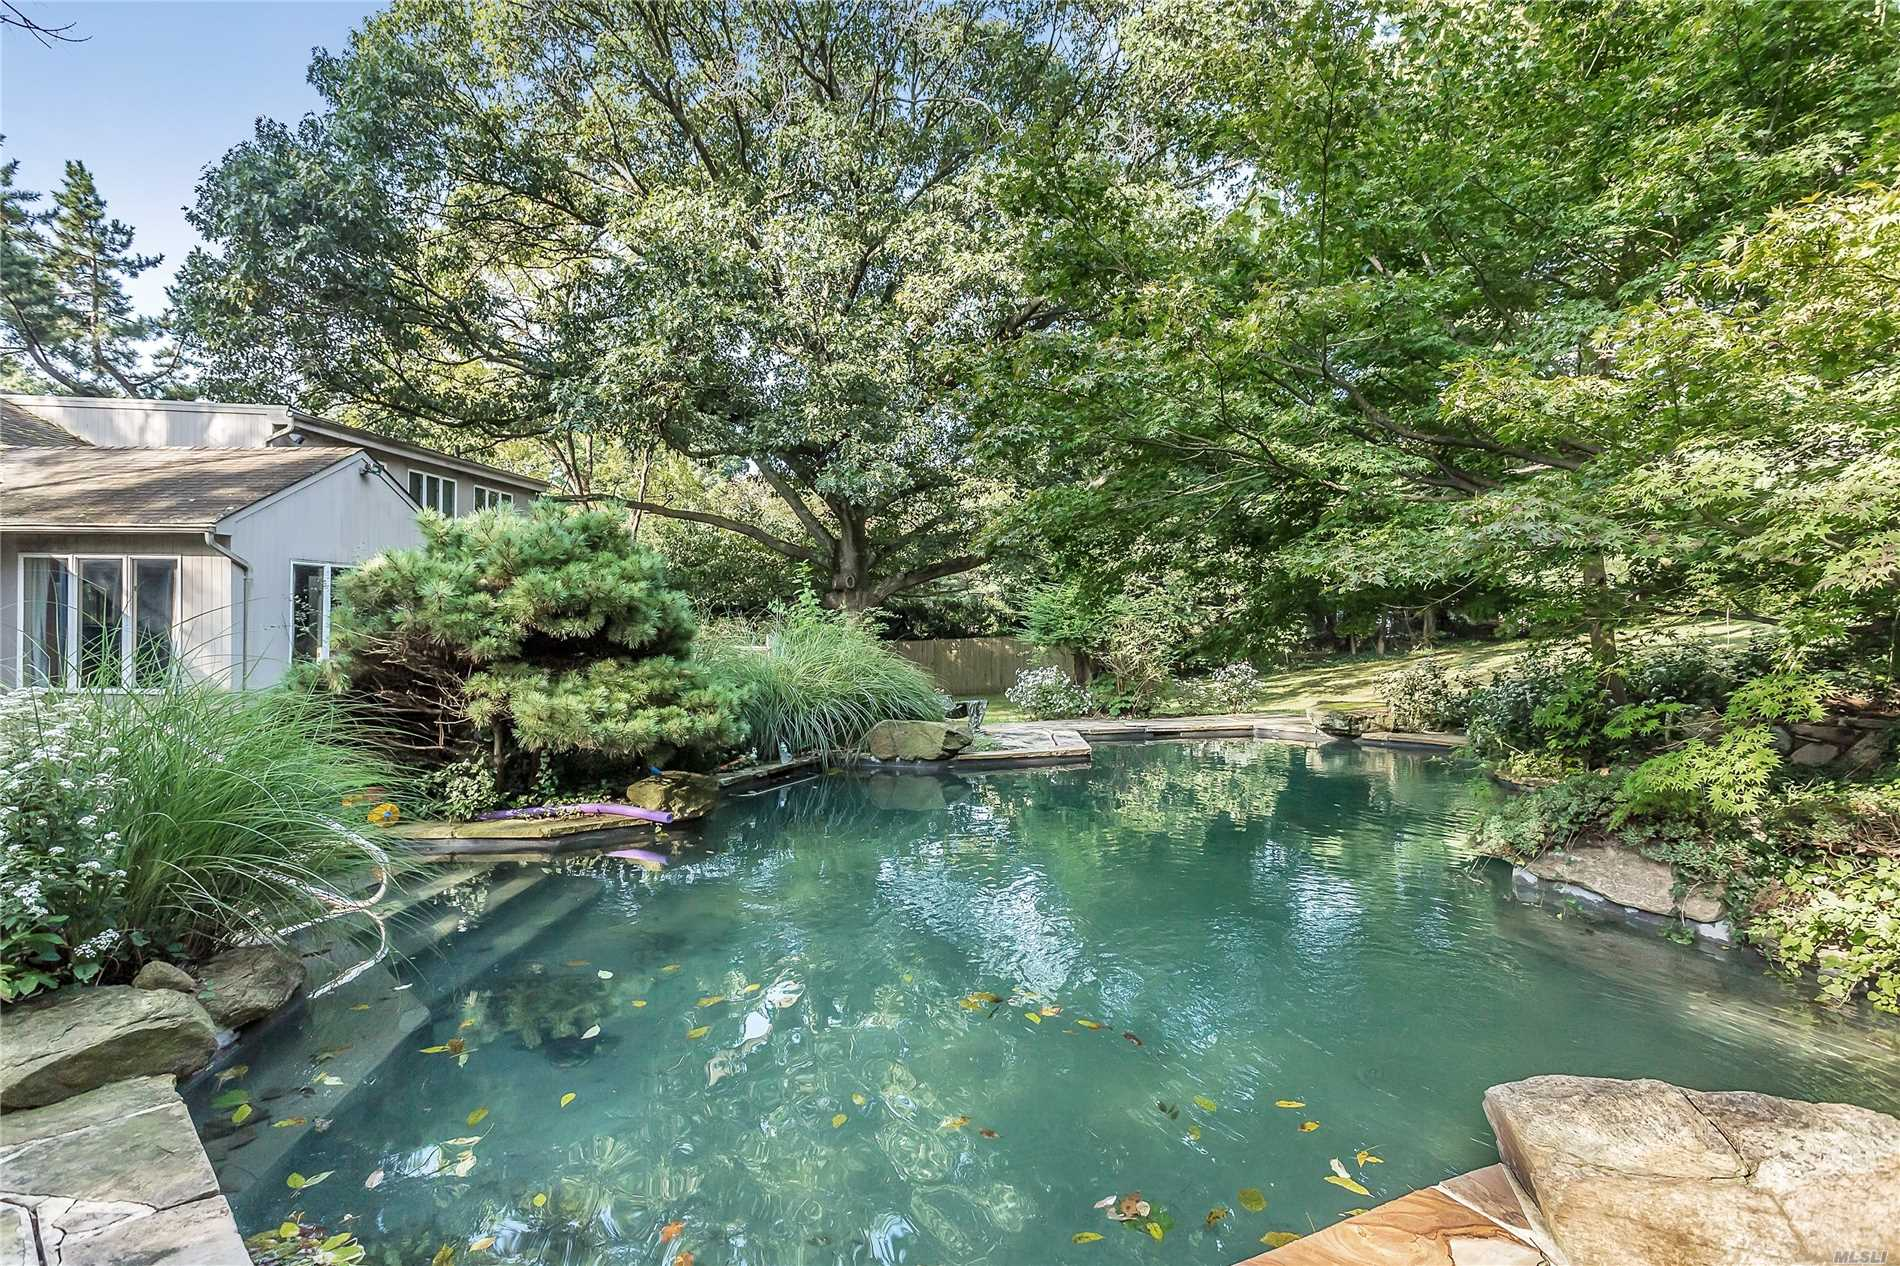 Roslyn Harbor. 1 Acre Plus With A Pool. 5 Bedrooms, 3.54 Baths Ranch On Prime Cul-De-Sac. Endless possibilities.